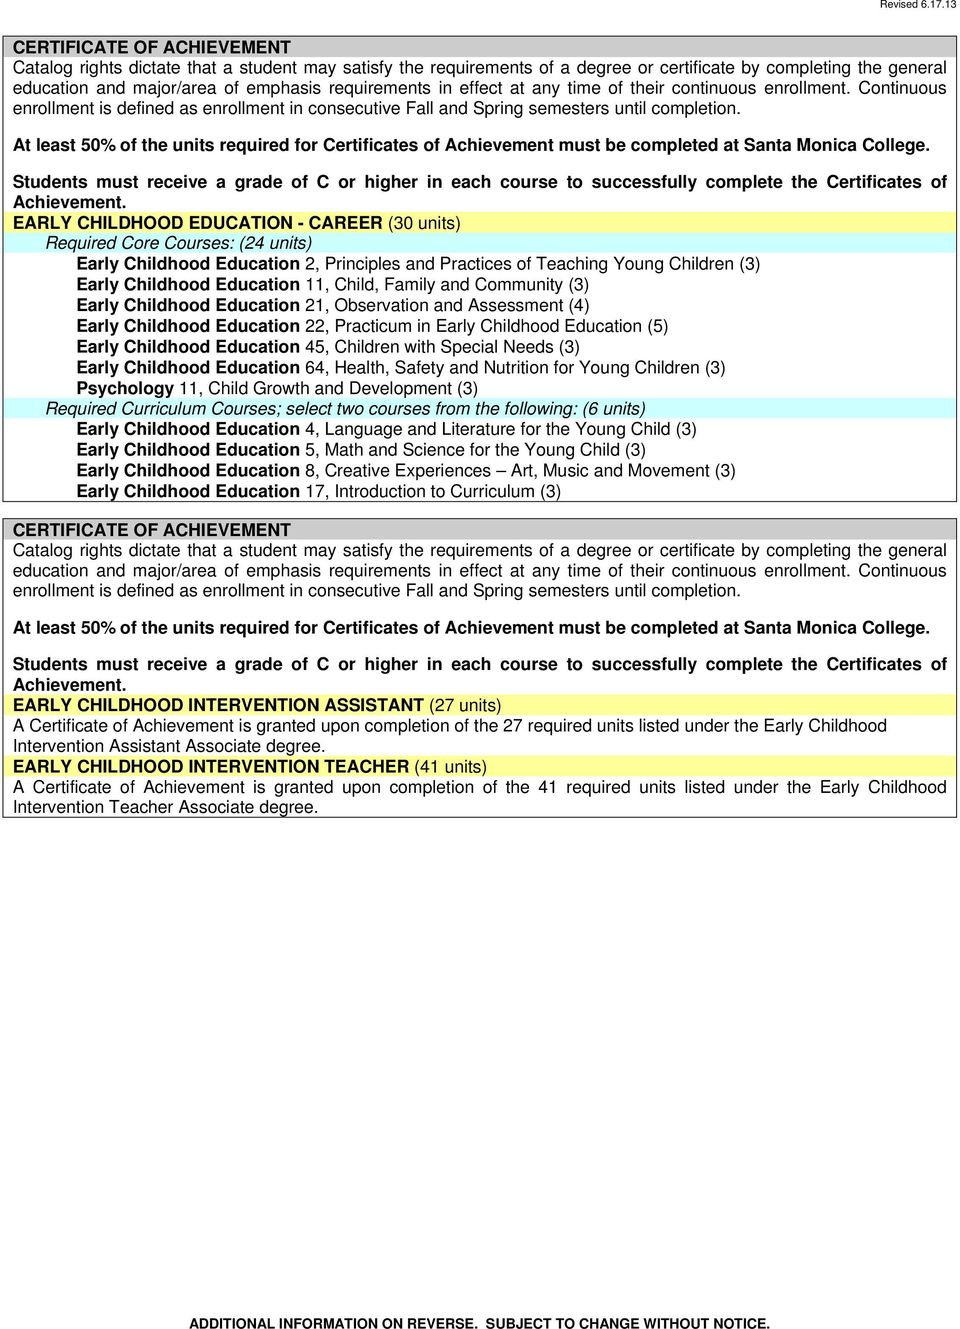 Early Childhood Education Associate Degree Certificate Of